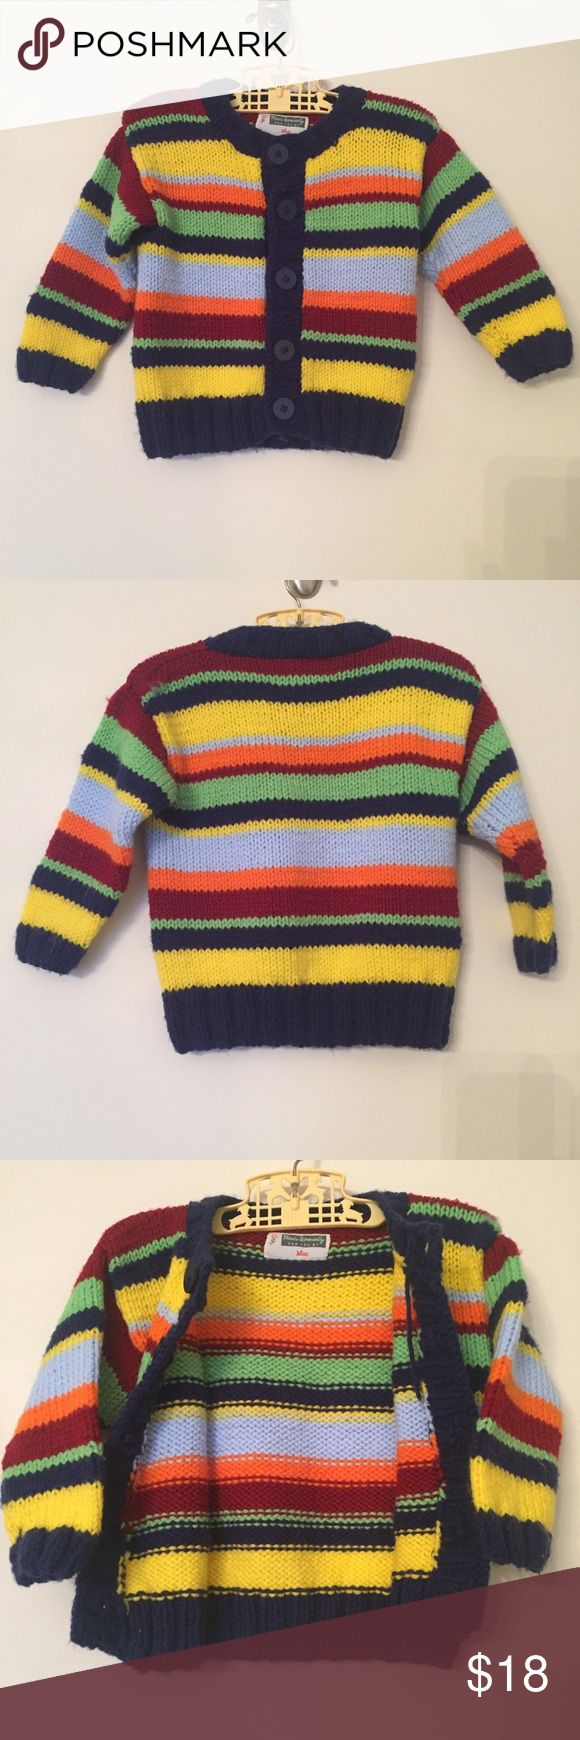 """Handmade Knit Cardigan This  adorable striped sweater has a label that reads, 'Made Especially For You by Mum'. Feels like sportweight acrylic yarn. Soft, not scratchy, and will be easy to wash. Stripes in red, green, navy blue, yellow, light blue, and orange.   Chest: 12""""  Length: 14"""" Shirts & Tops Sweaters"""